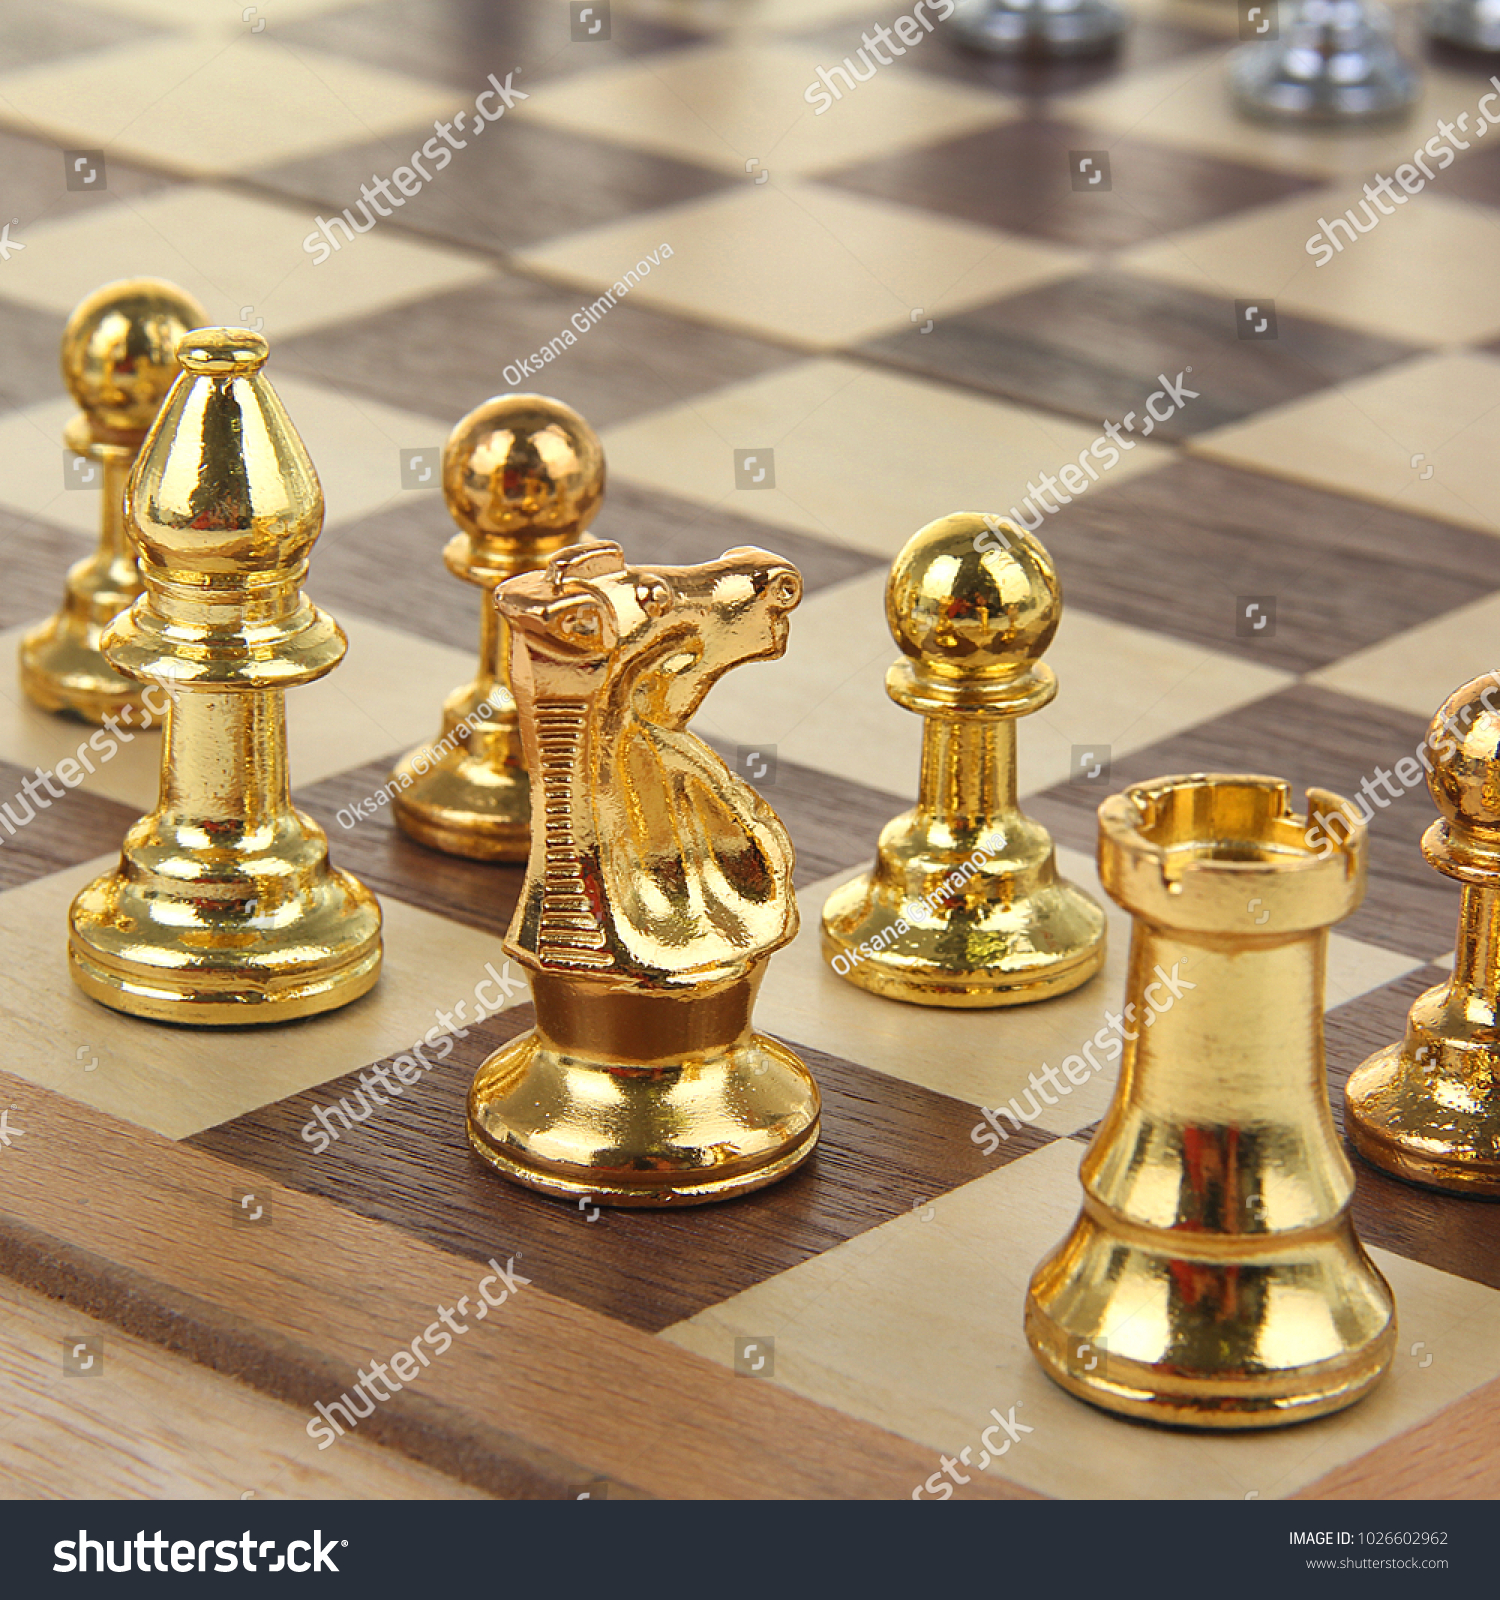 Gold Chess Pieces Gold Silver Chess Pieces On Chessboard Stock Photo Edit Now